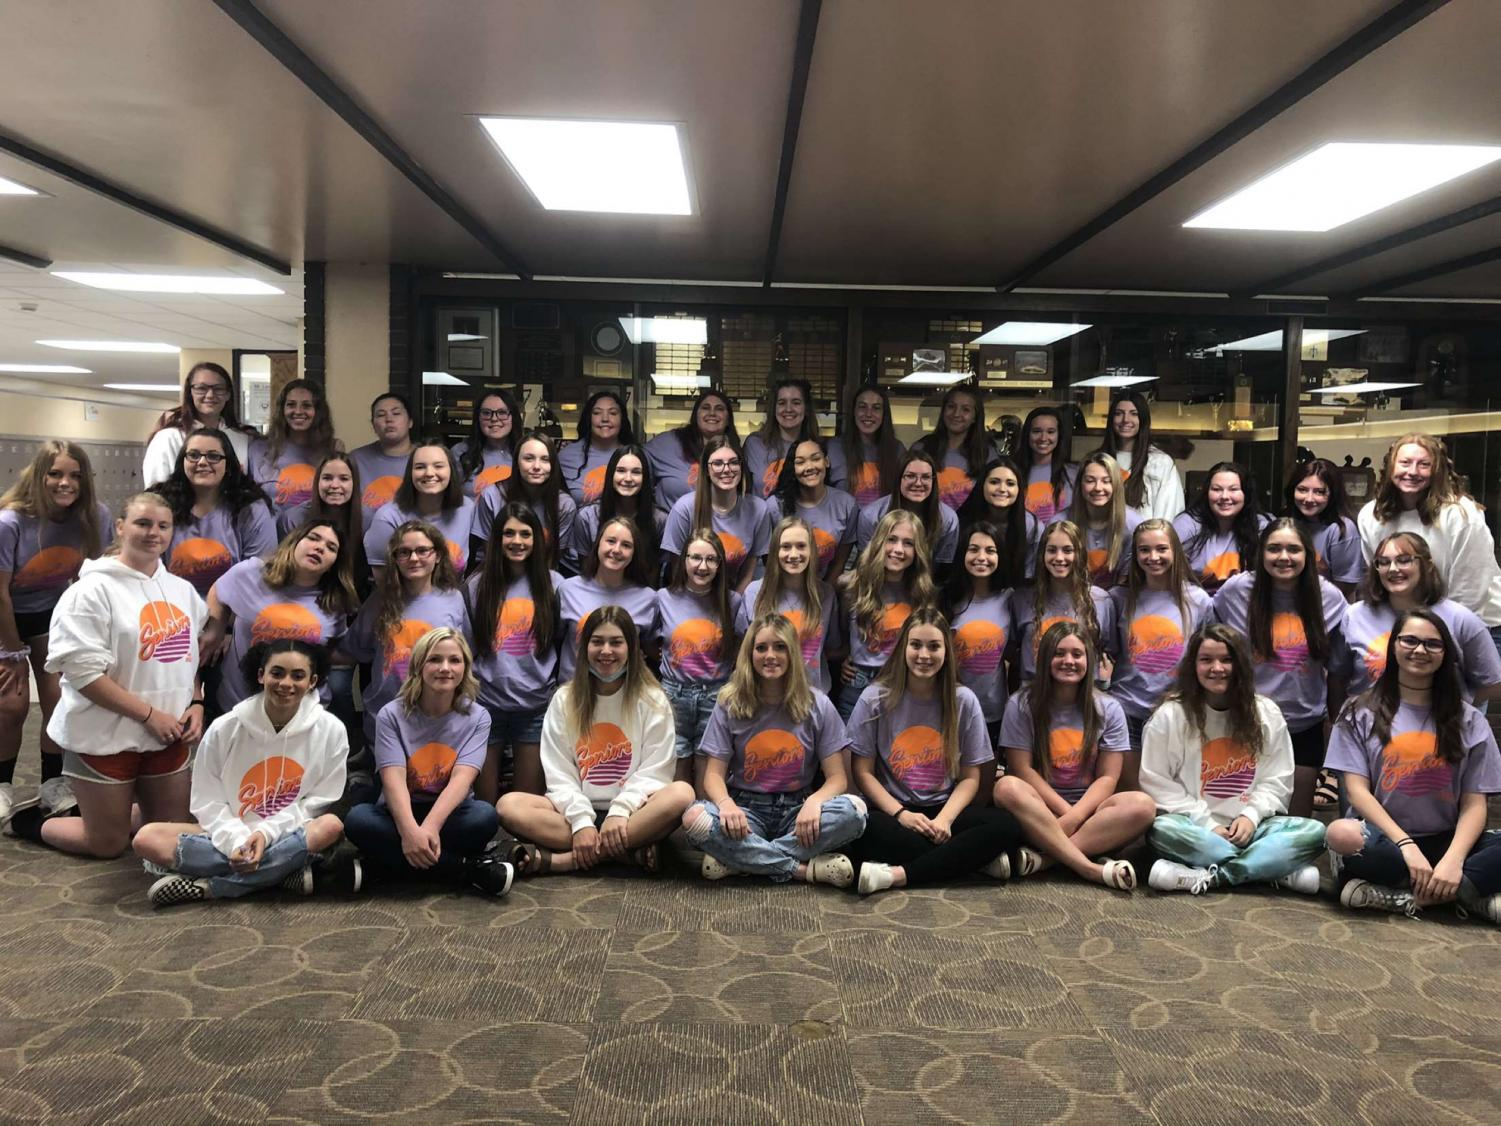 The upcoming senior girls wore their shirts on the last day of their junior year. After the shirts were delayed twice, they were finally delivered the day before the girls wore them.